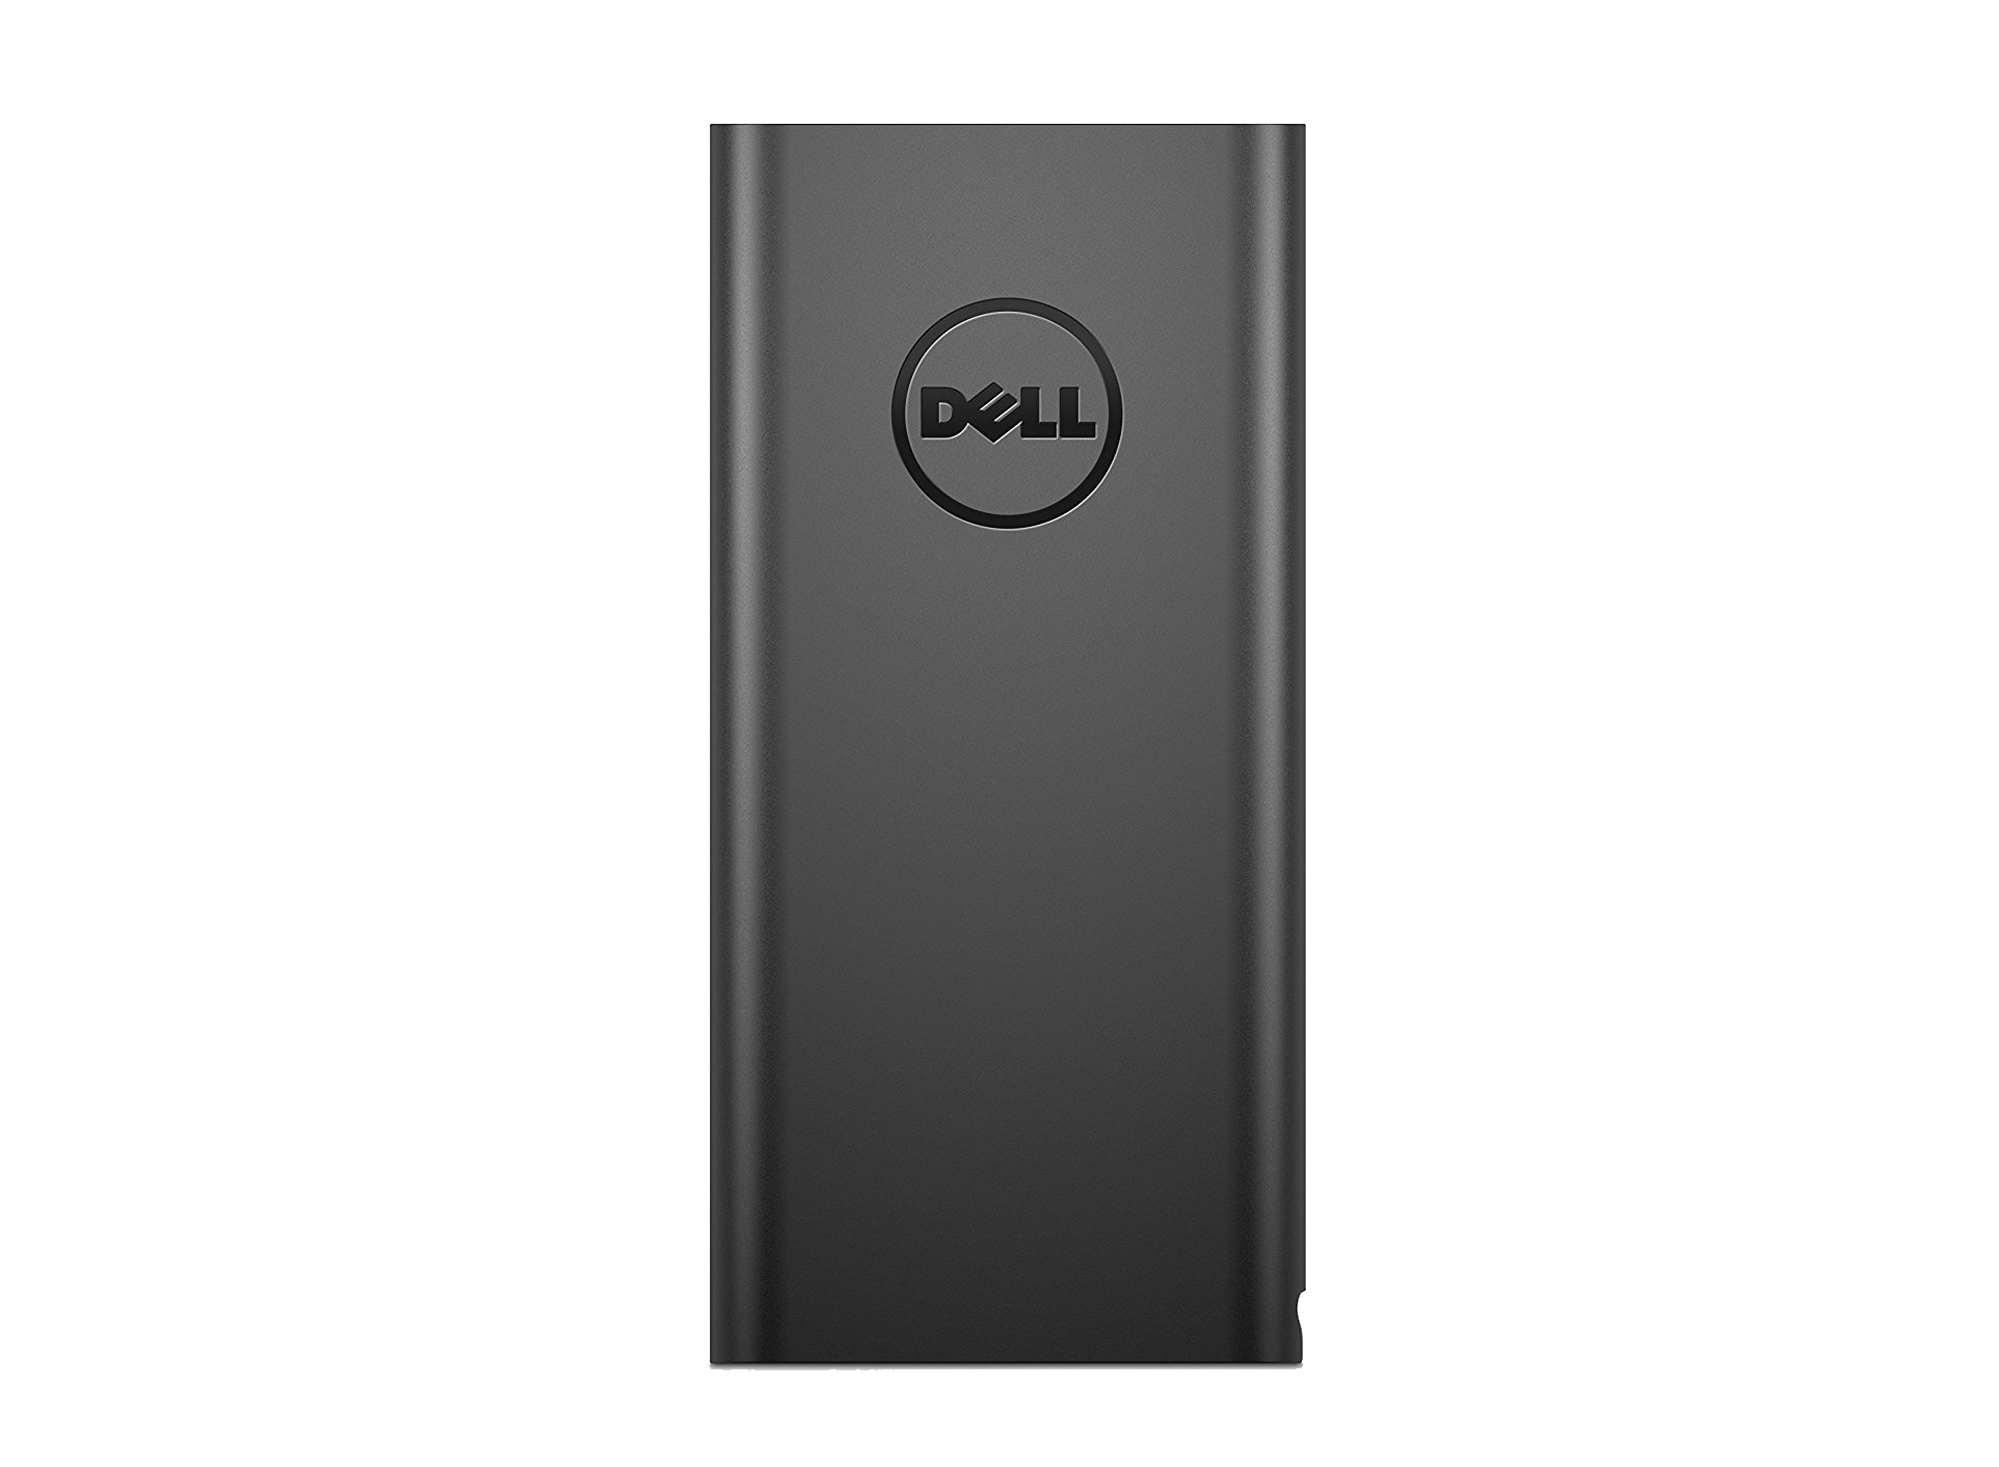 Dell Power Companion PW7015L [TEST]: Powerbank til både bærbar og mobil